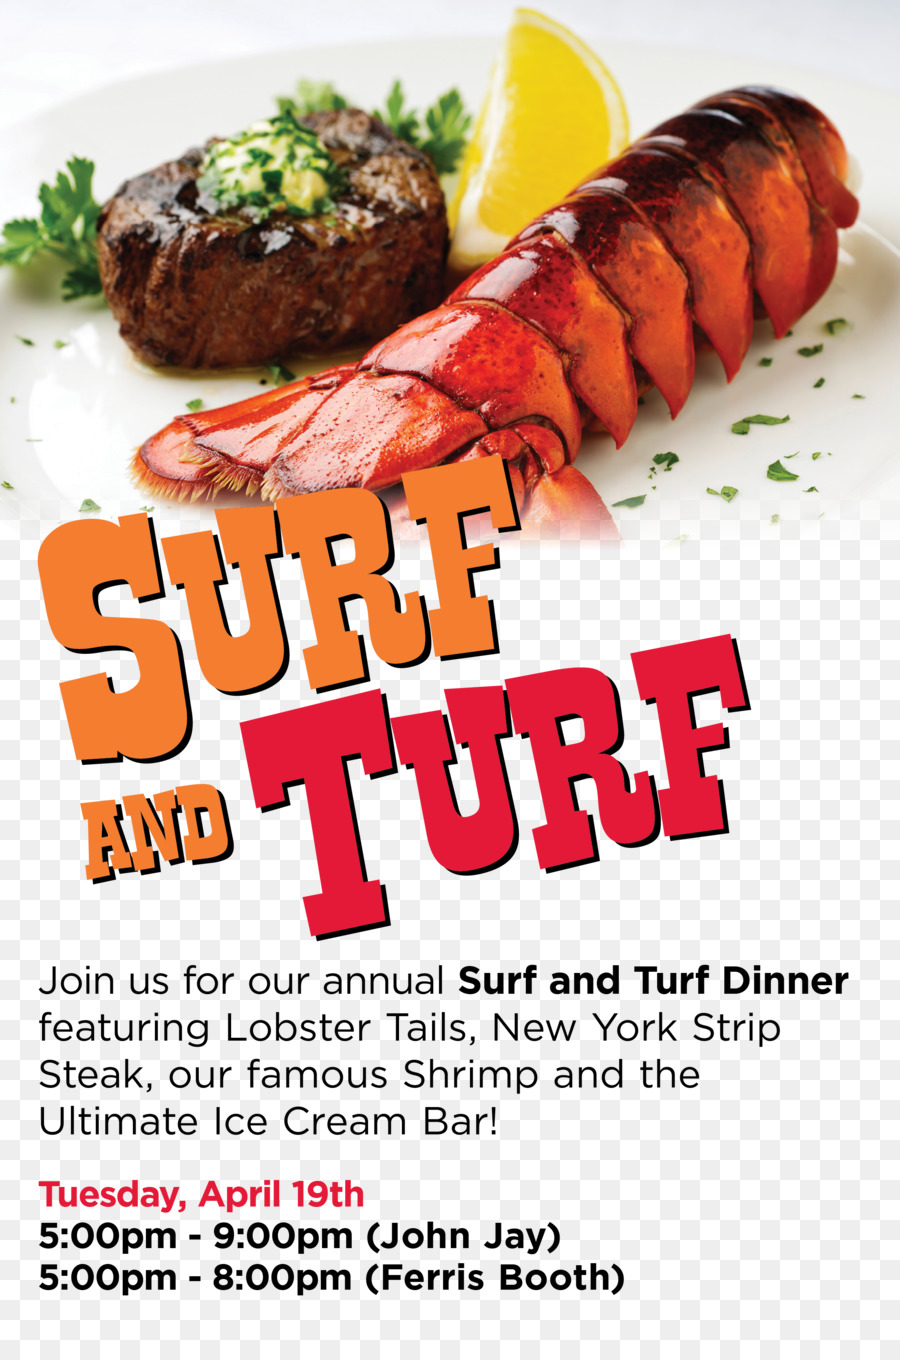 Seafood clipart surf and turf. Junk food cartoon advertising